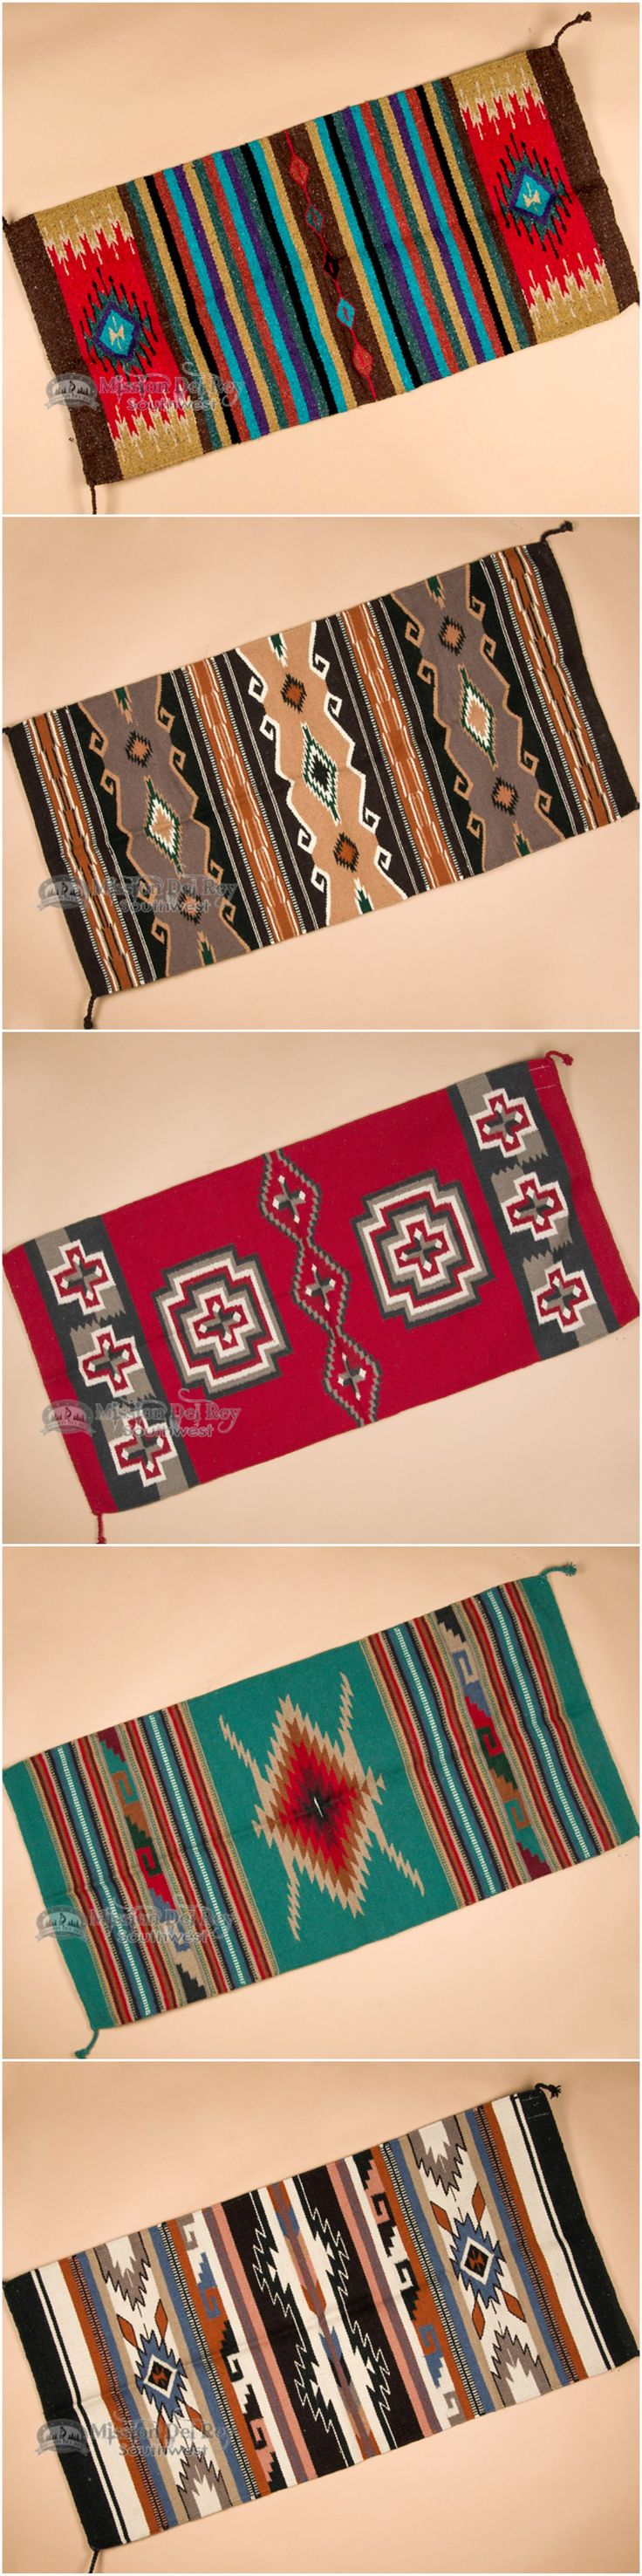 Hand woven southwestern rugs are beautifully designed for a cabin, Santa Fe style, rustic home, or anywhere you want to add great southwest style. Made with designs and patterns like traditional Navajo Indian rugs, southwestern rugs are hand woven with beautiful high quality wool. Choose from a wide selection of colors, designs and sizes, and sign up for our newsletter to receive exclusive discounts and coupons. Find more southwestern rugs and  home decor at www.missiondelrey....